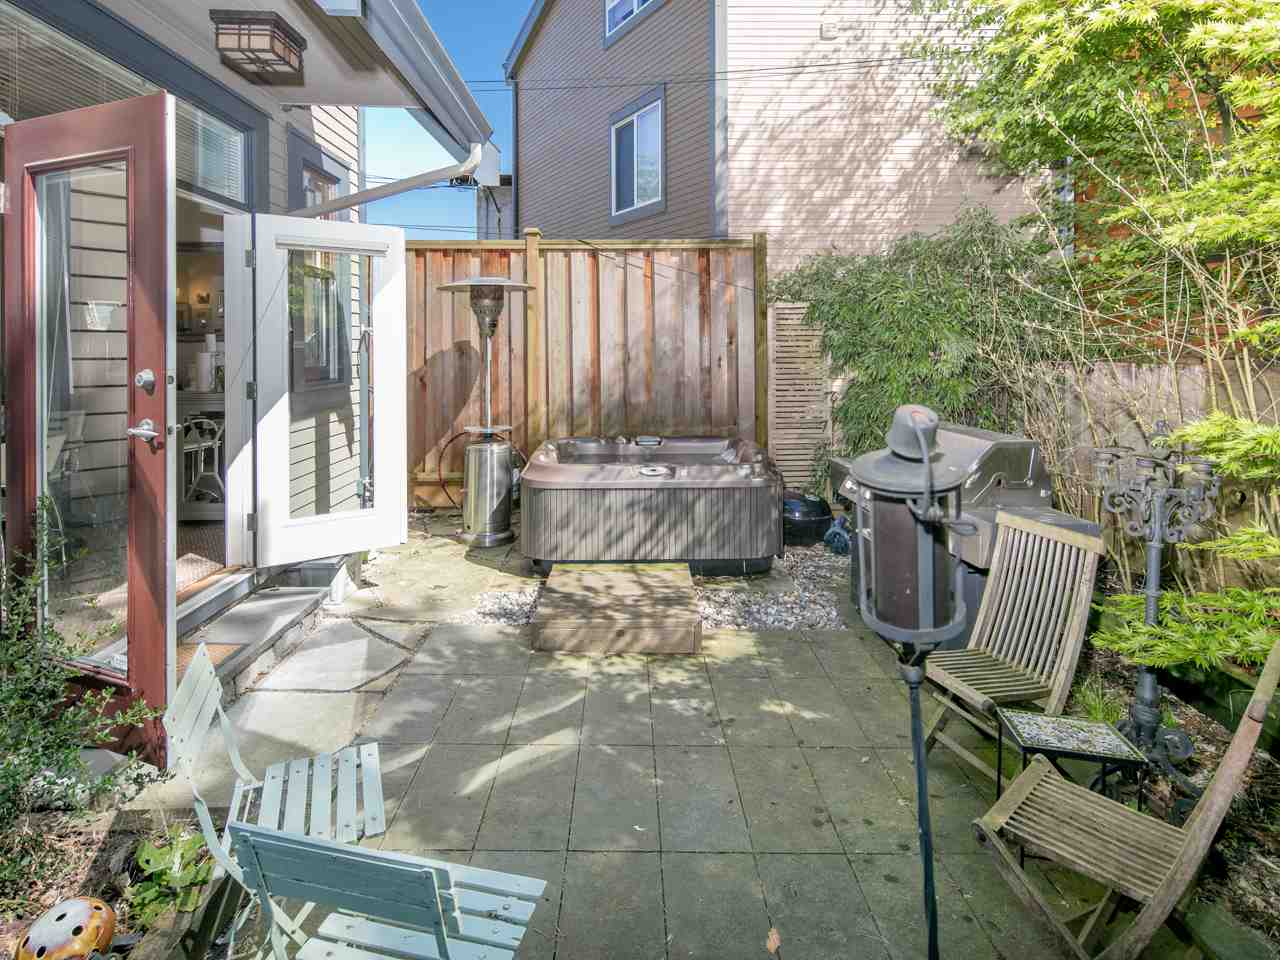 Photo 18: 840 DUNLEVY Avenue in Vancouver: Mount Pleasant VE House for sale (Vancouver East)  : MLS® # R2159141